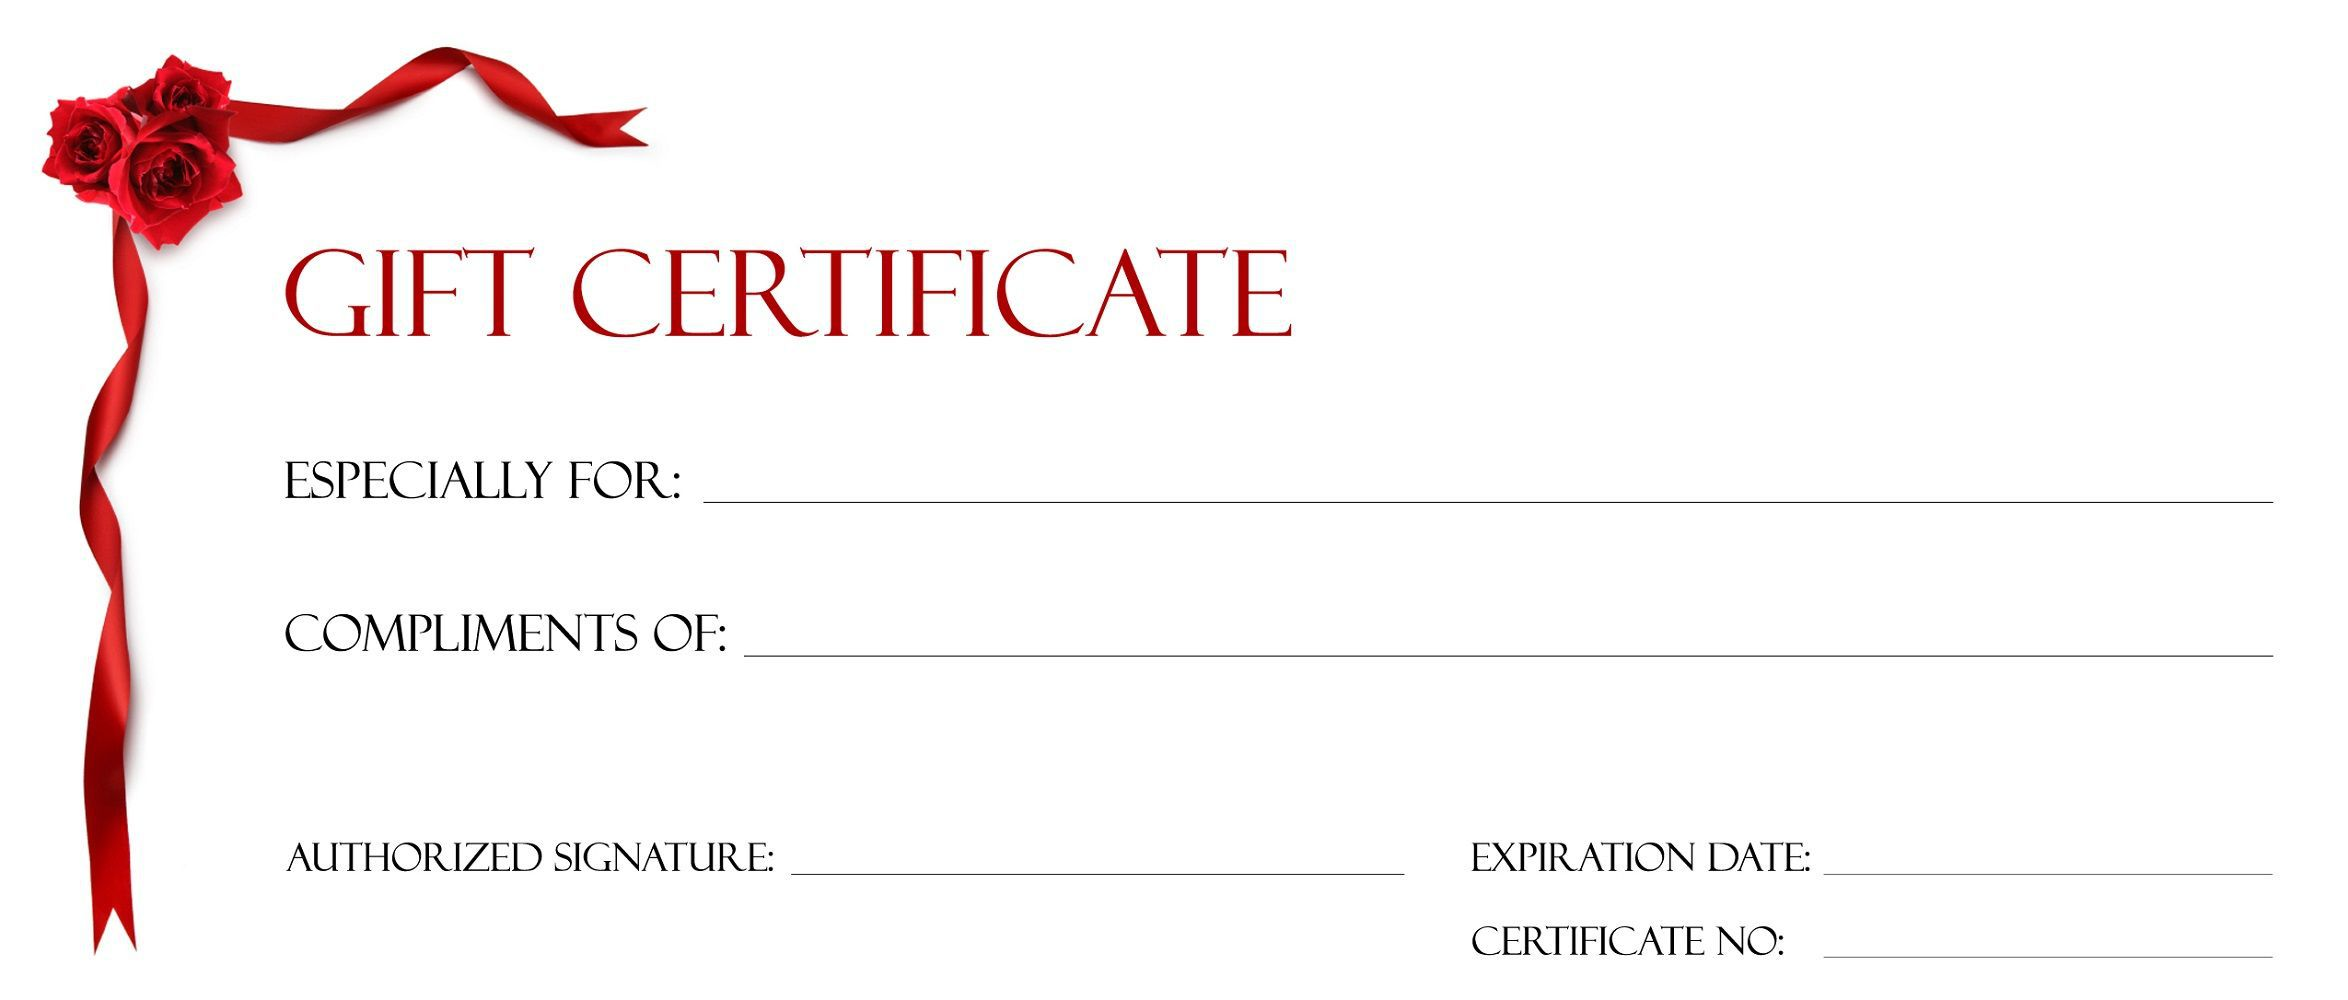 000 Wonderful Template For Christma Gift Certificate Free Highest Clarity  Voucher Uk Editable Download Microsoft WordFull